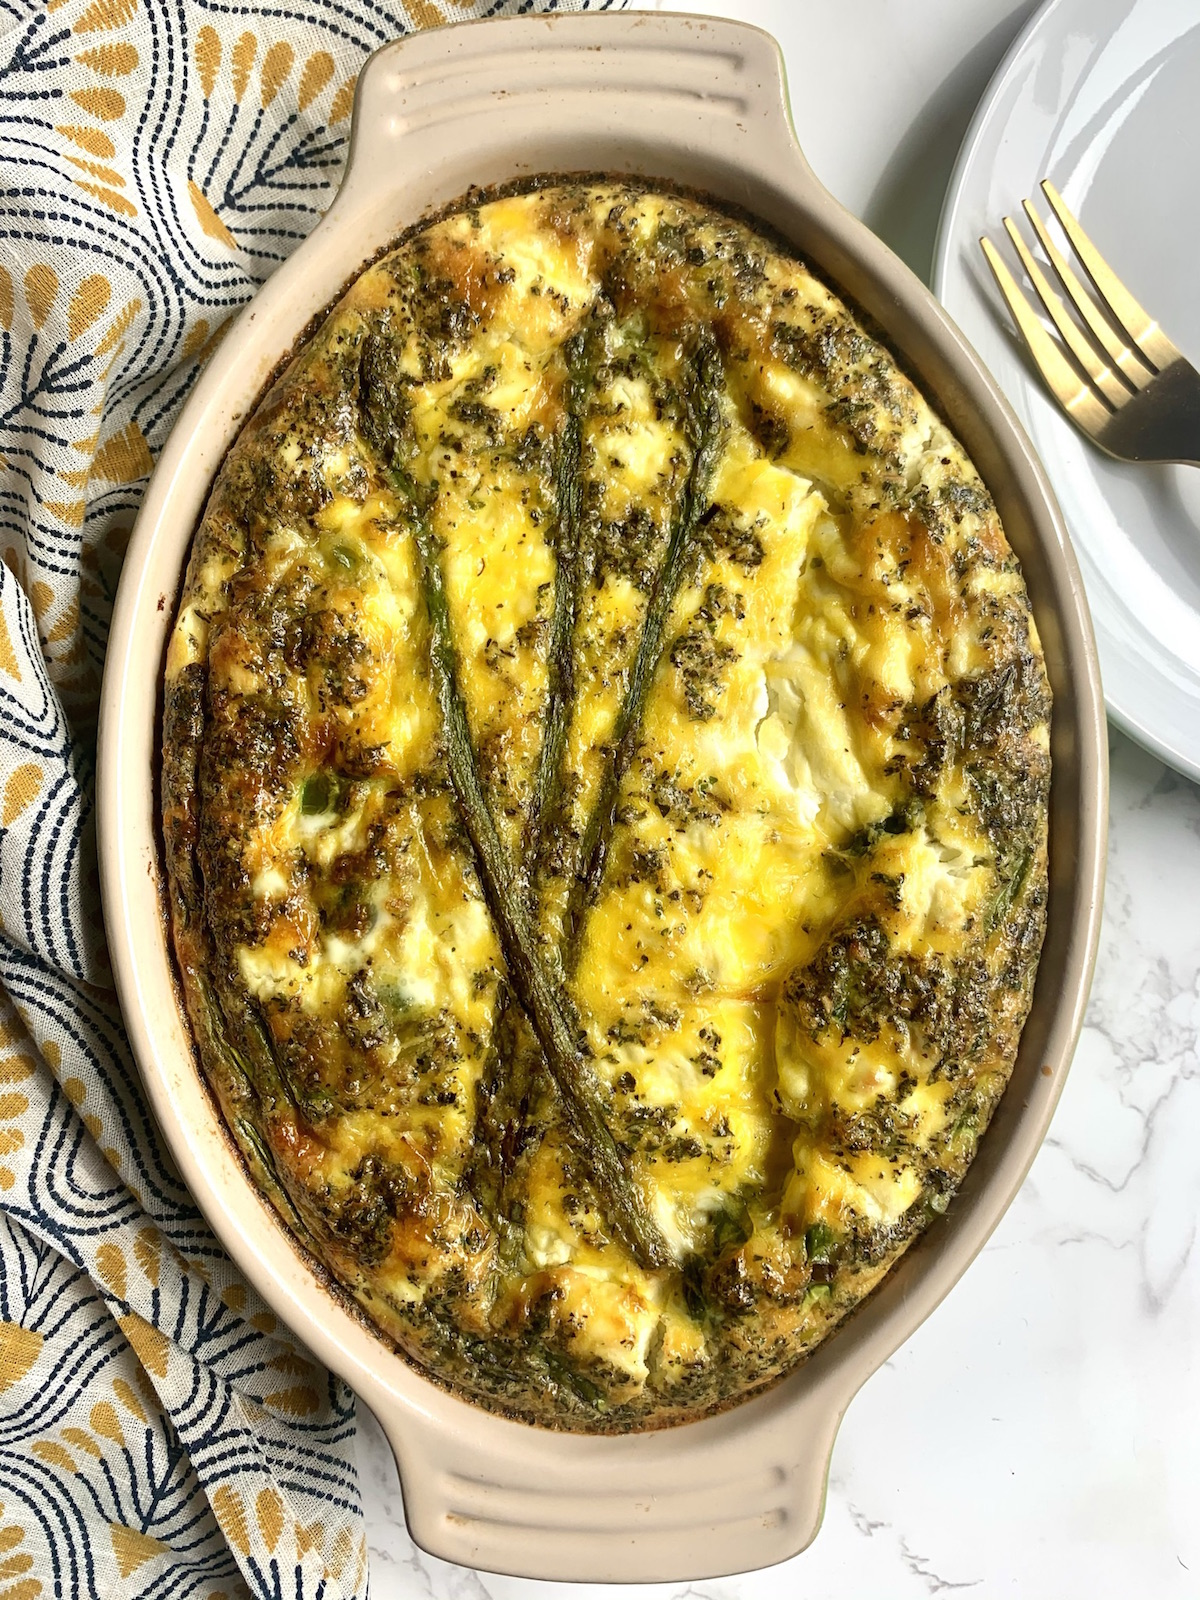 Oval baking dish with baked asparagus, leek and goat cheese frittata on a marble countertop with a yellow and grey pattern napkin and a white plate and gold fork